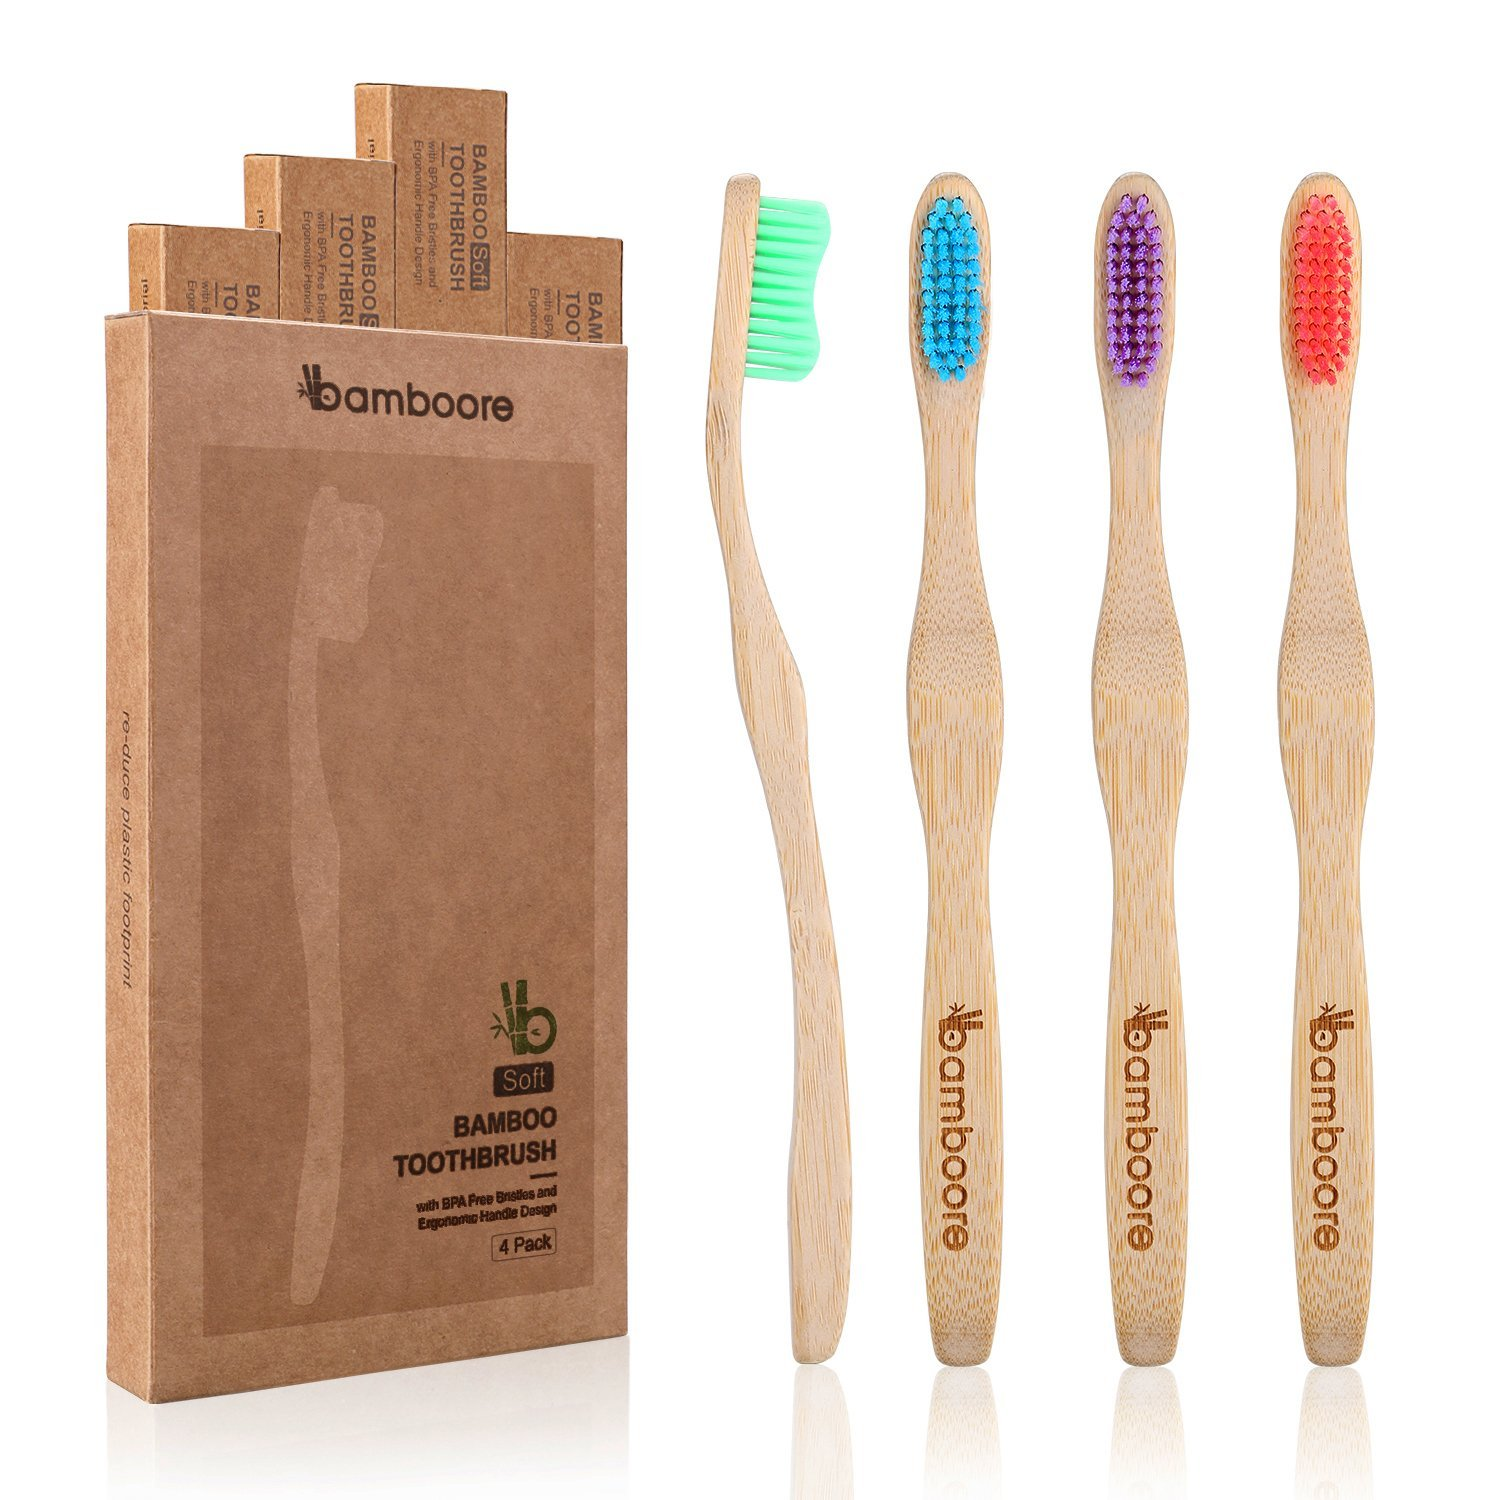 4 pack bamboore bamboo toothbrush